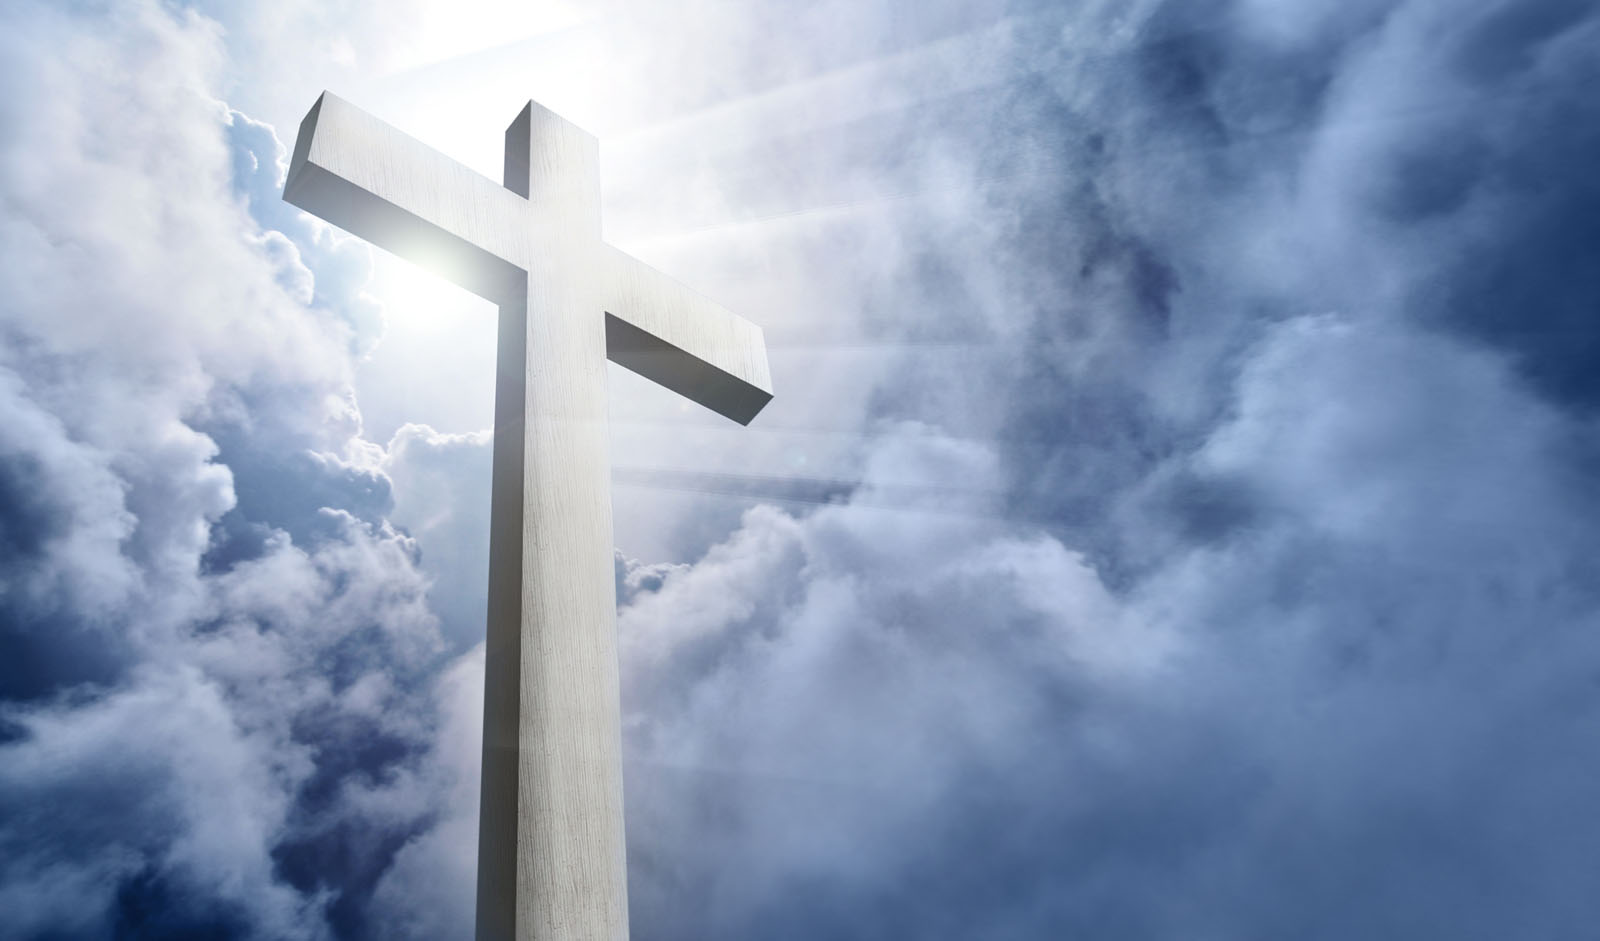 White wooden cross (render) standing in front of a cloudy sky with sunbeams shining forward.